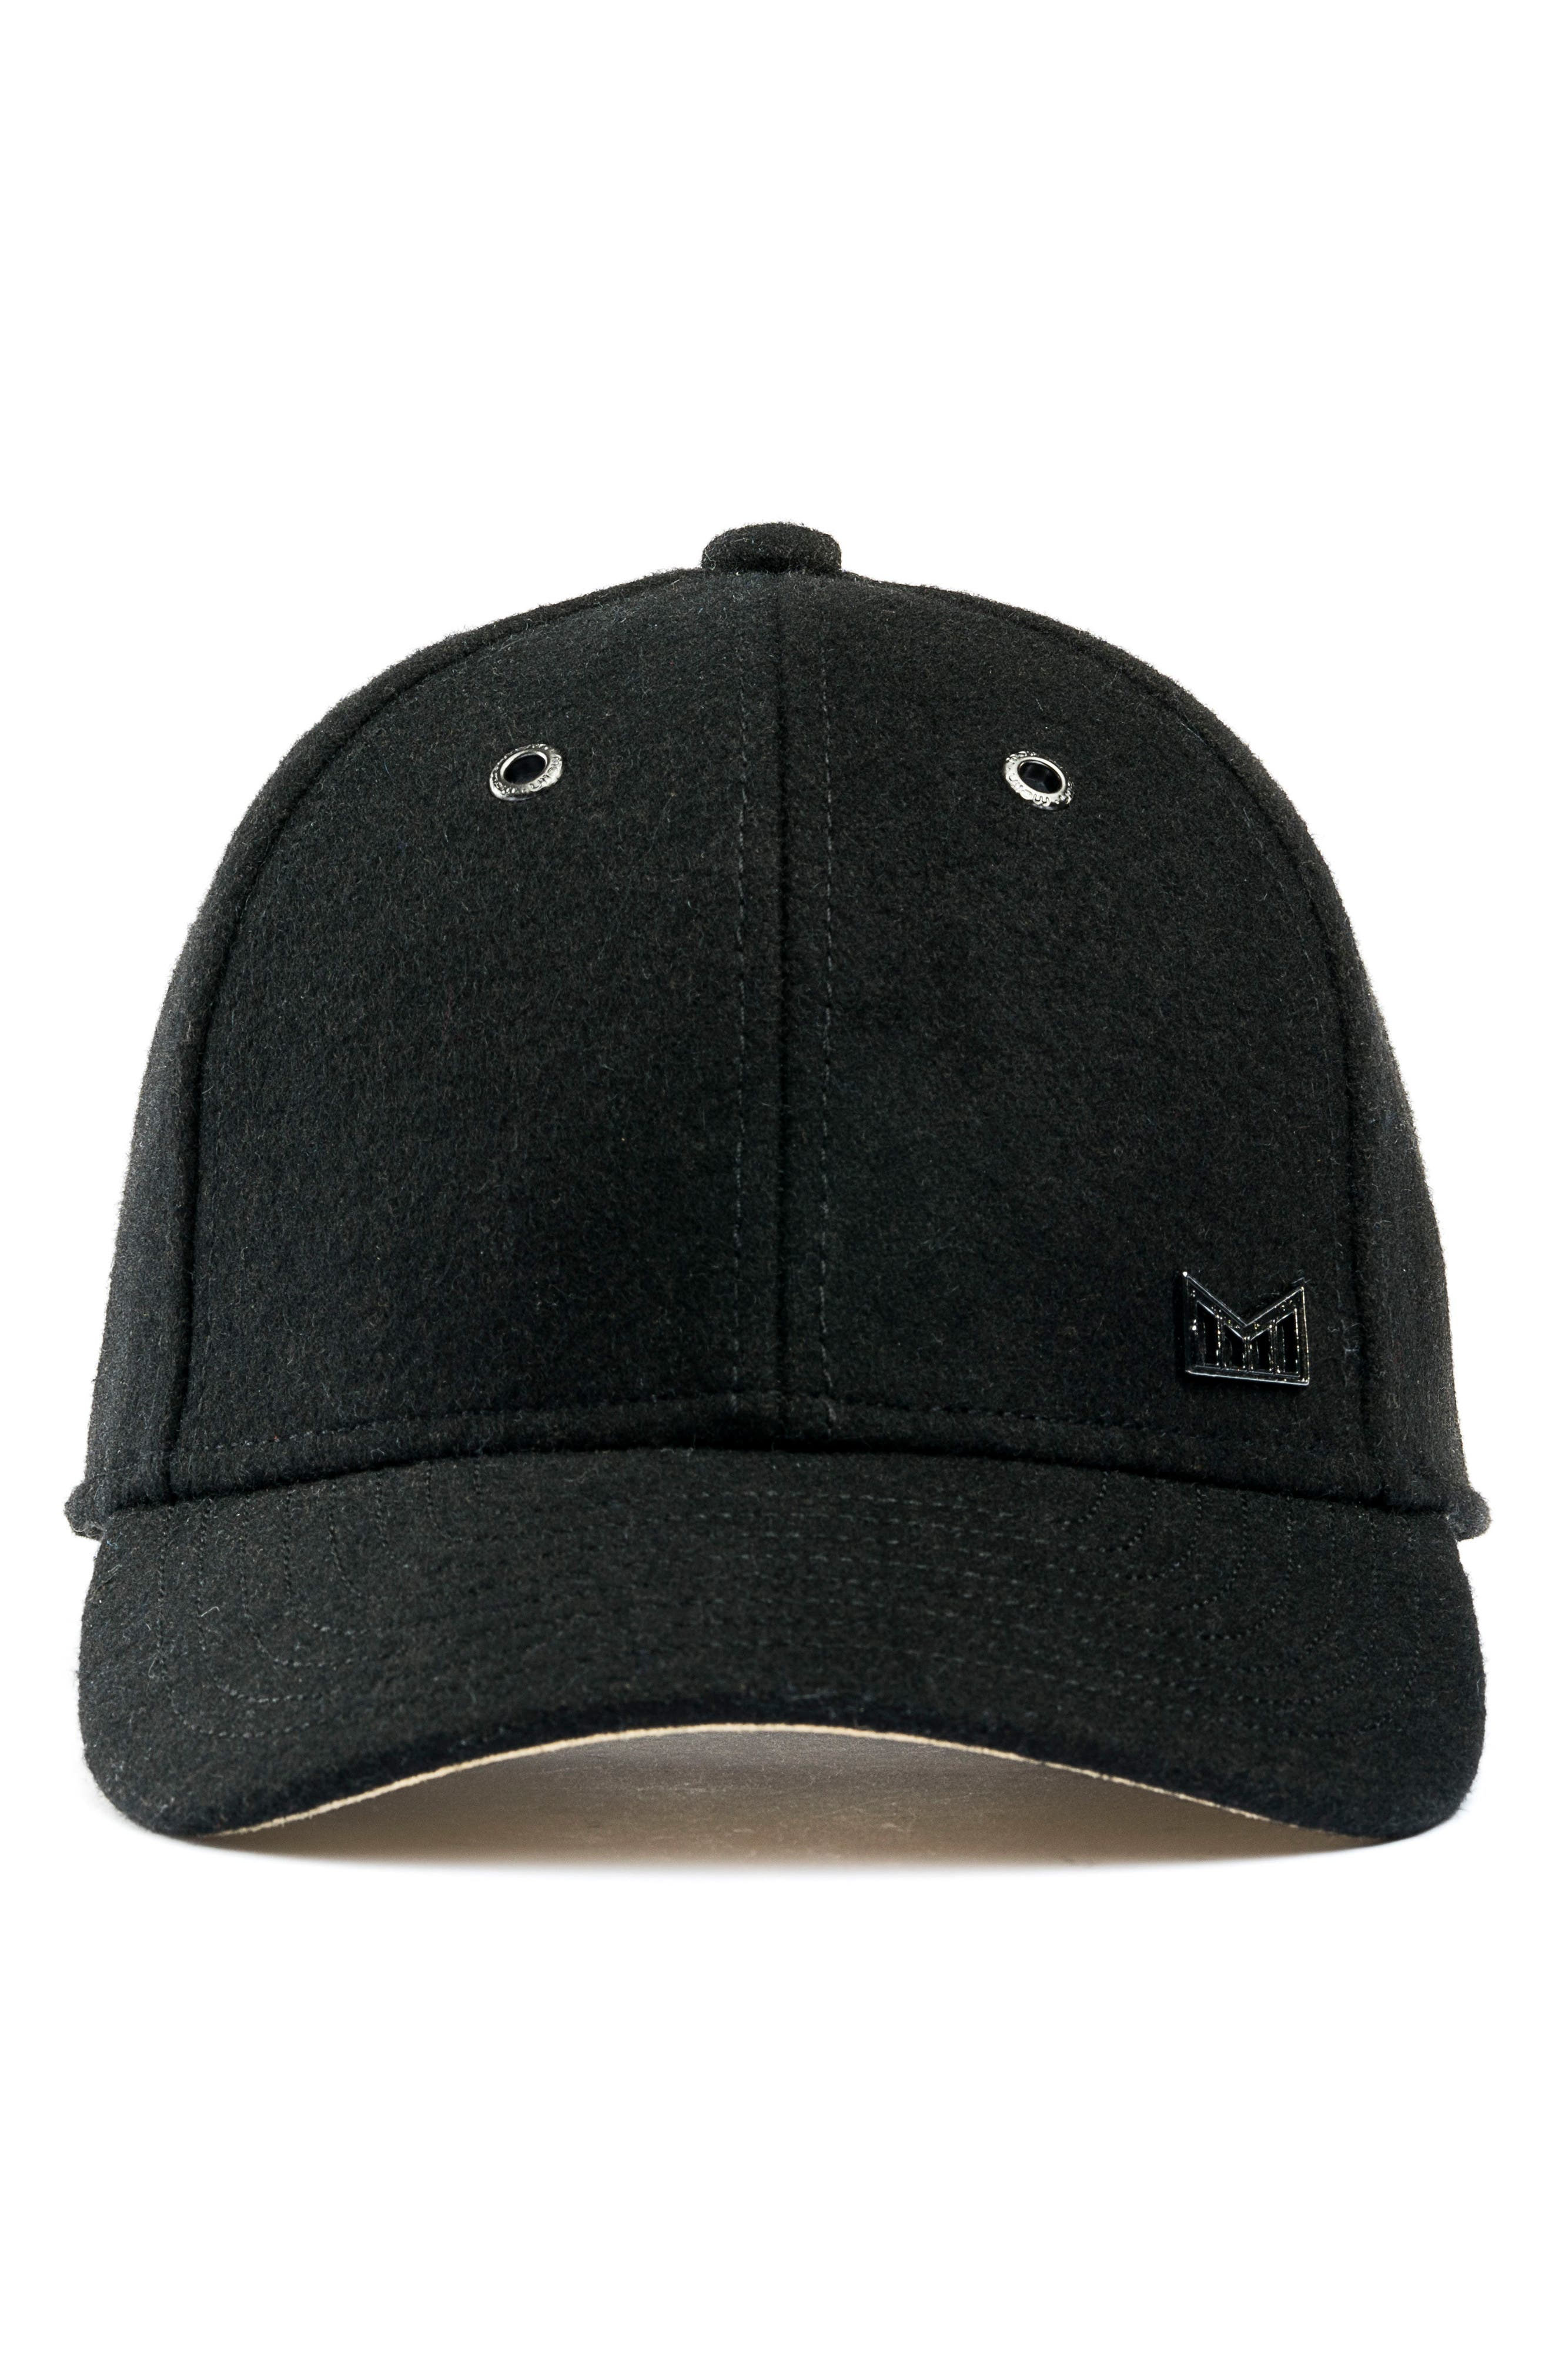 'Glory Days' Strapback Baseball Cap,                             Alternate thumbnail 2, color,                             BLACK